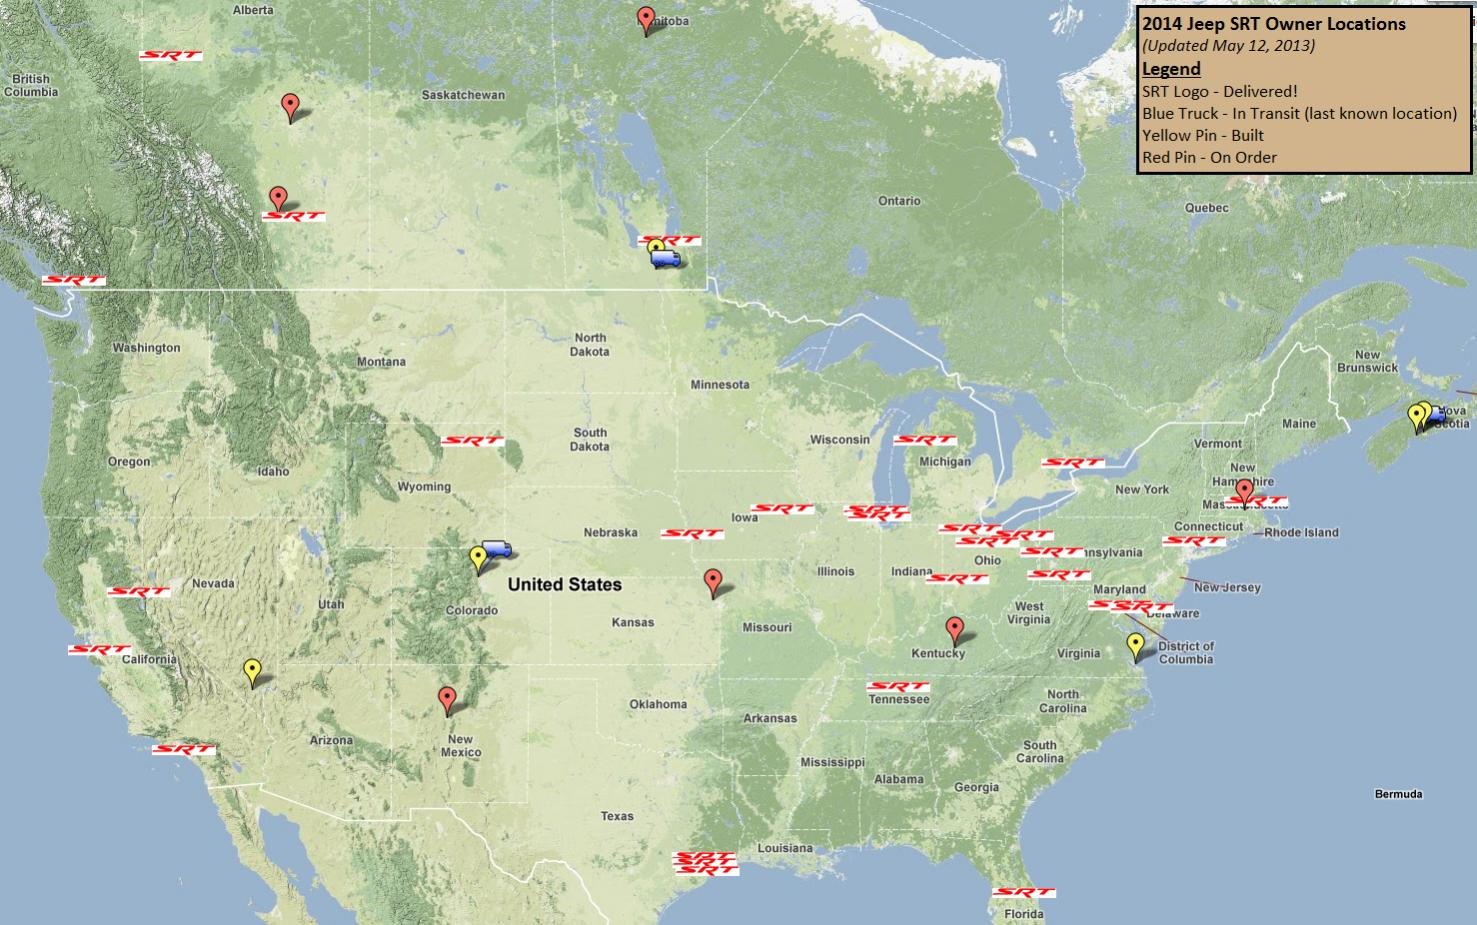 2014 SRT Owners Map 2013 05 12